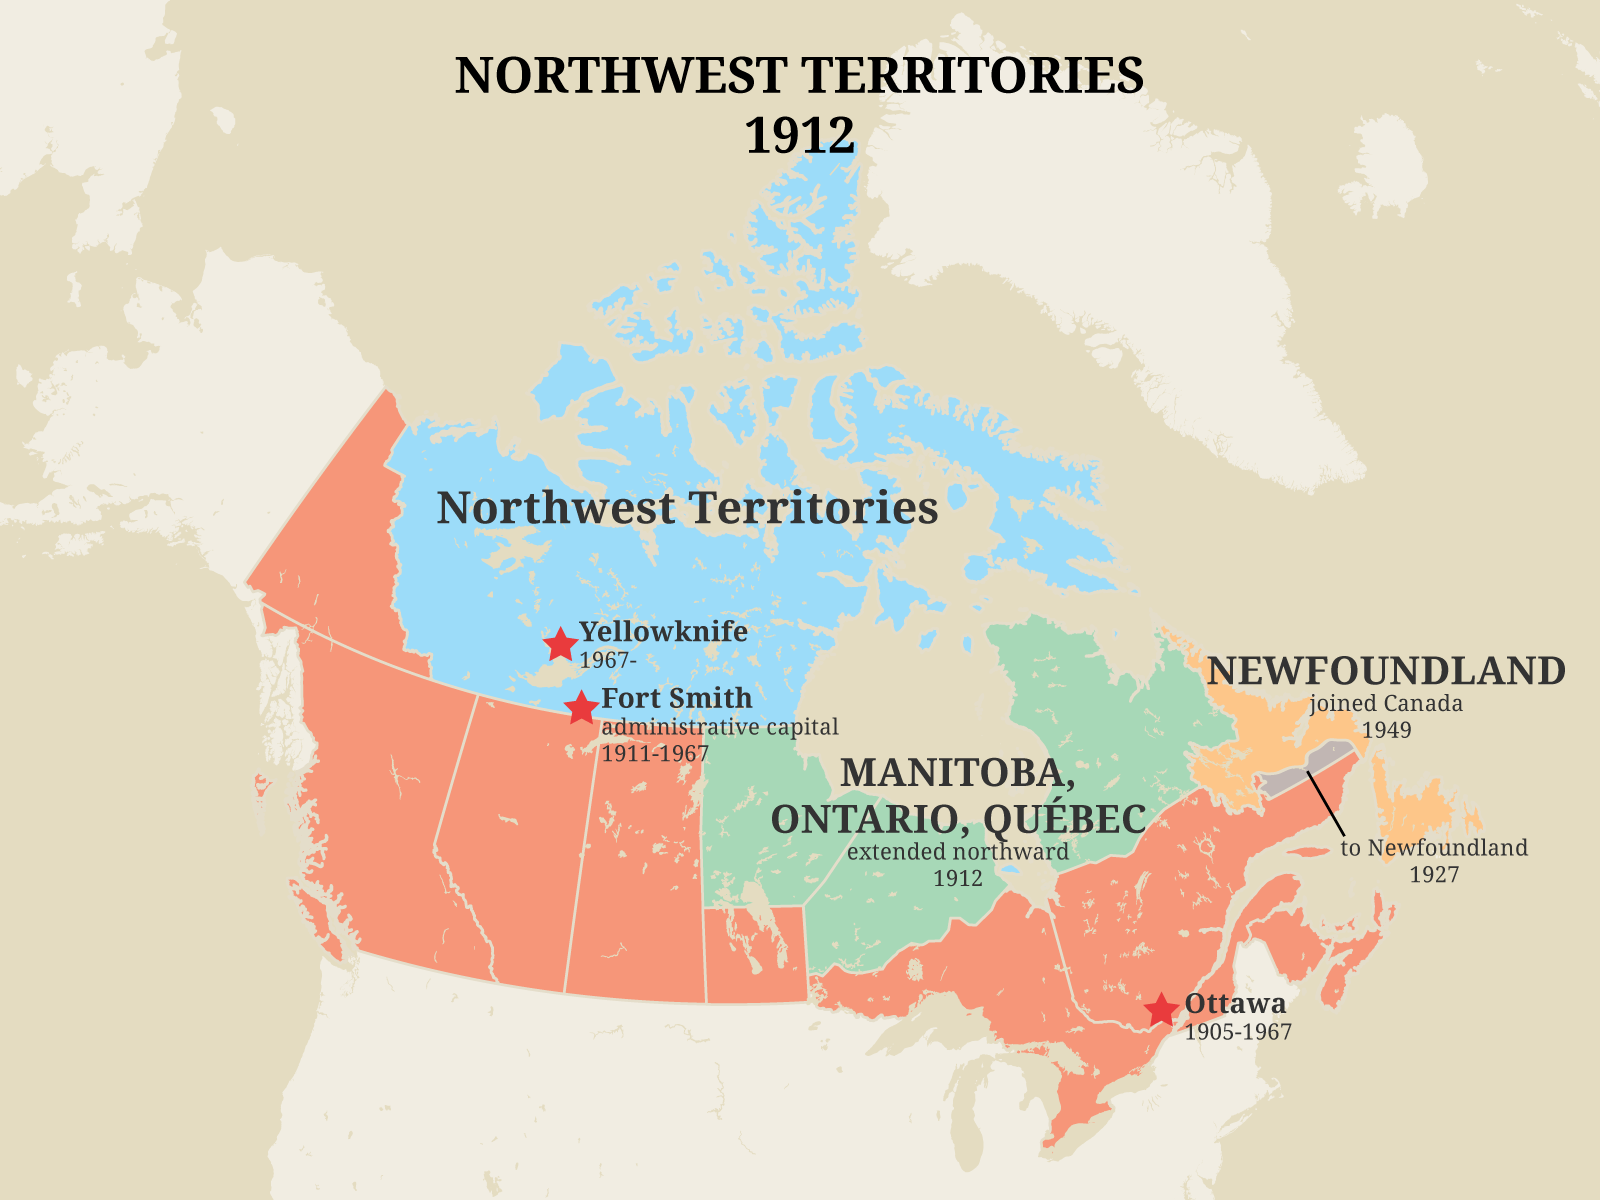 Territorial Evolution Of The Northwest Territories Pwnhc Cpspg